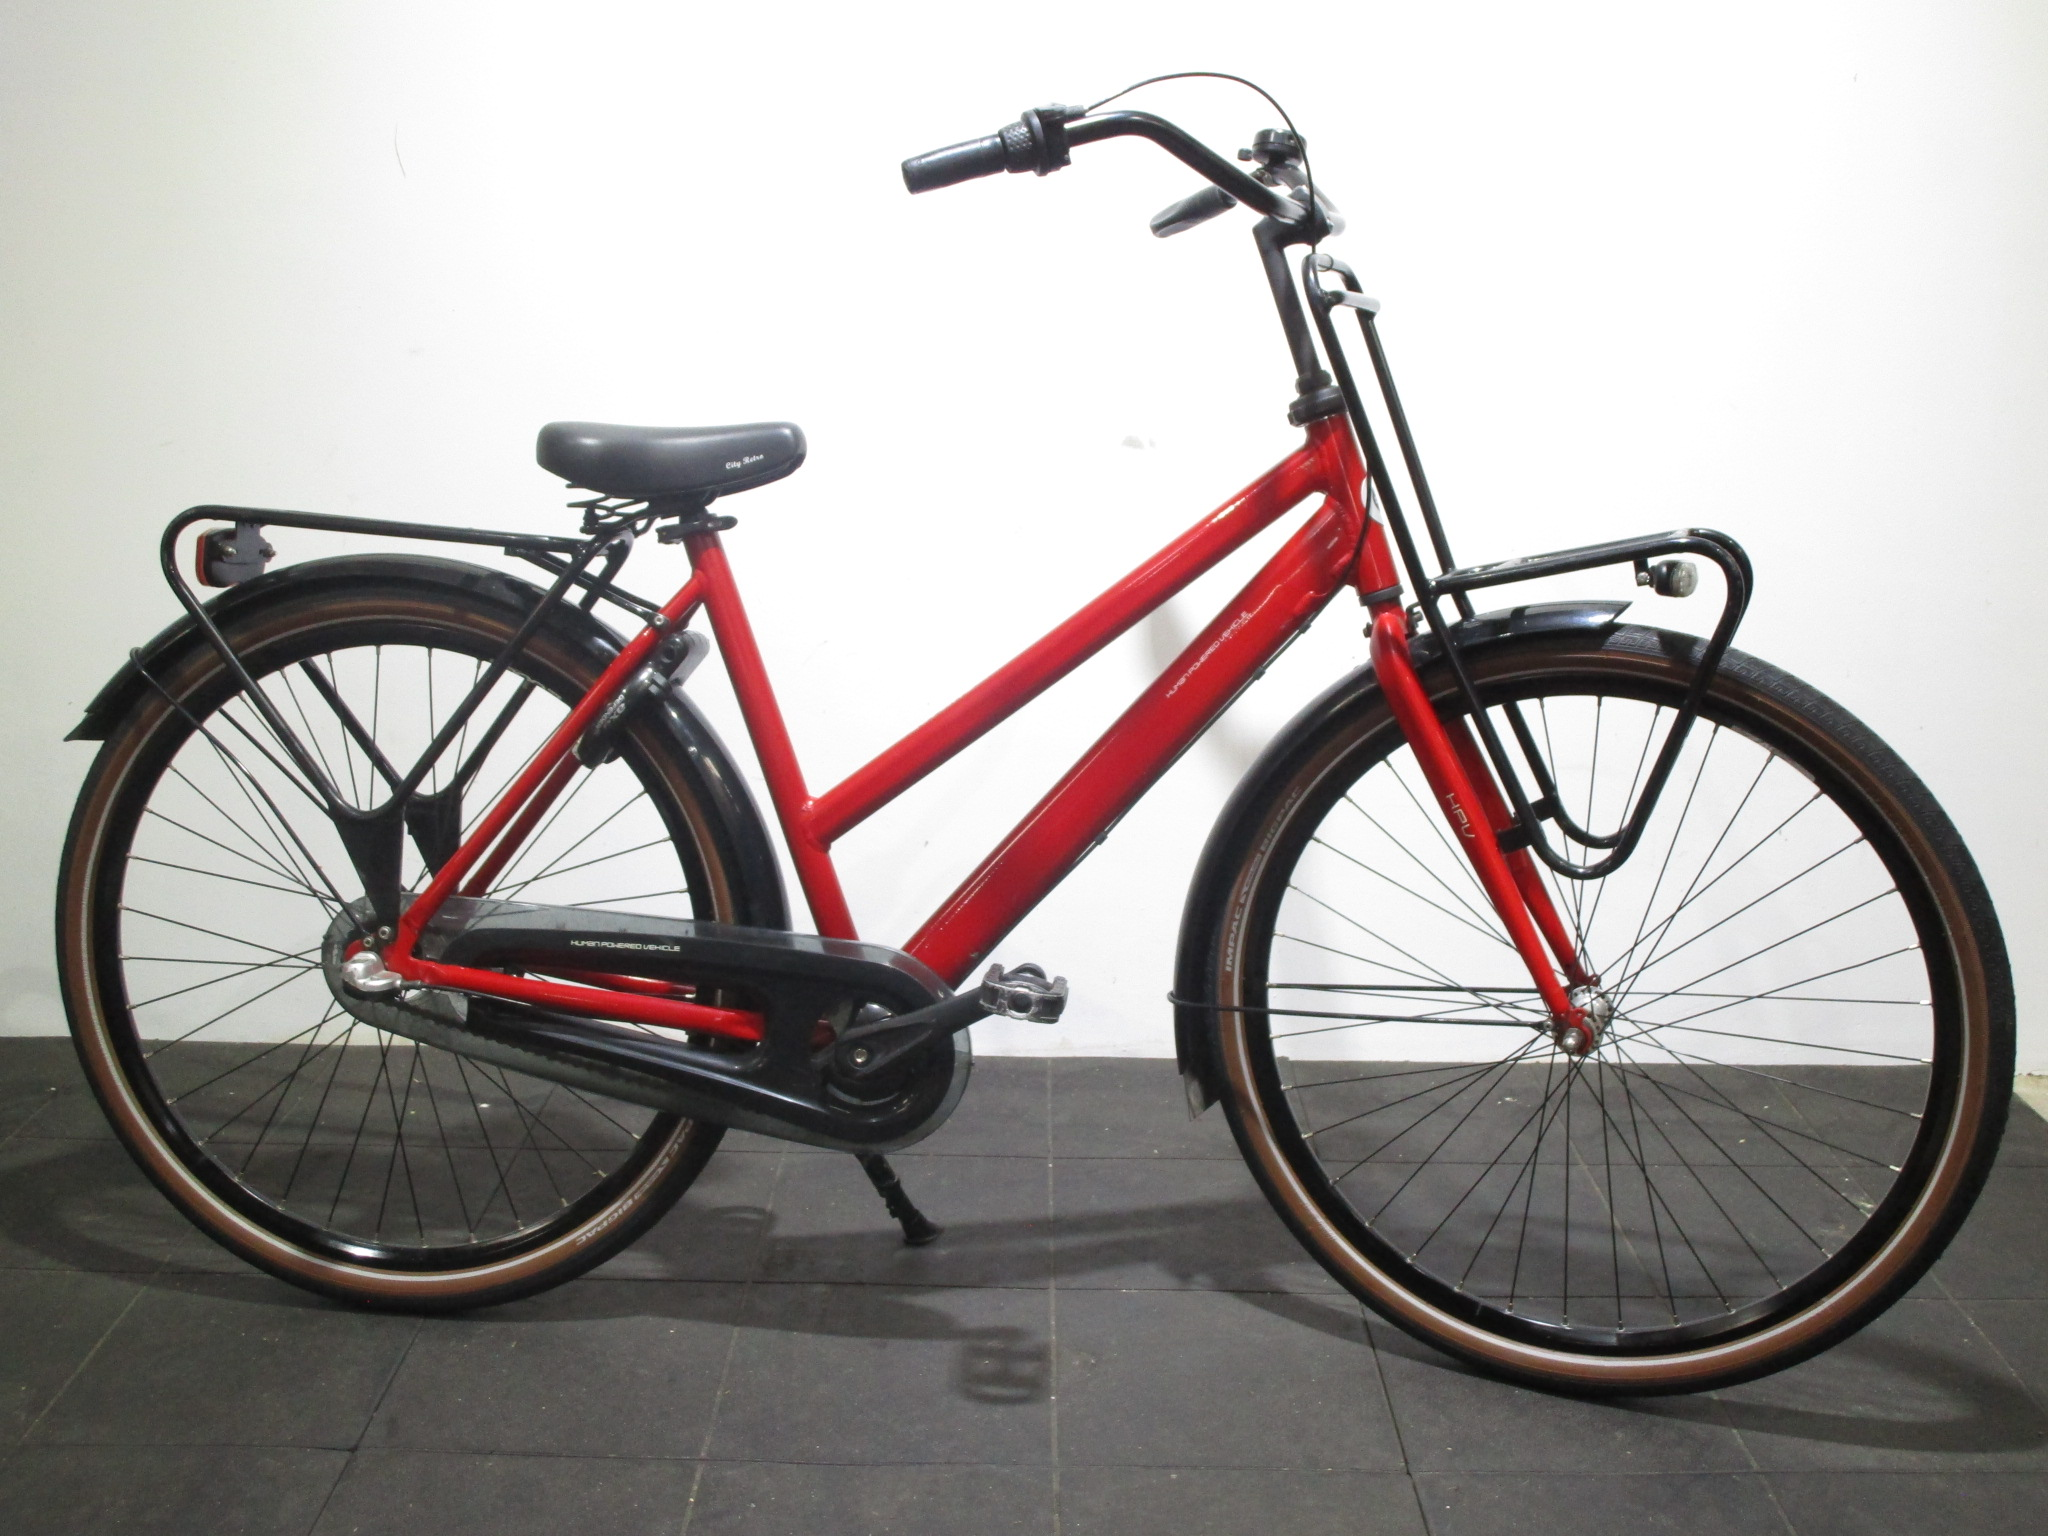 Cortina HPV frame 52 3 versnellings € 279,00